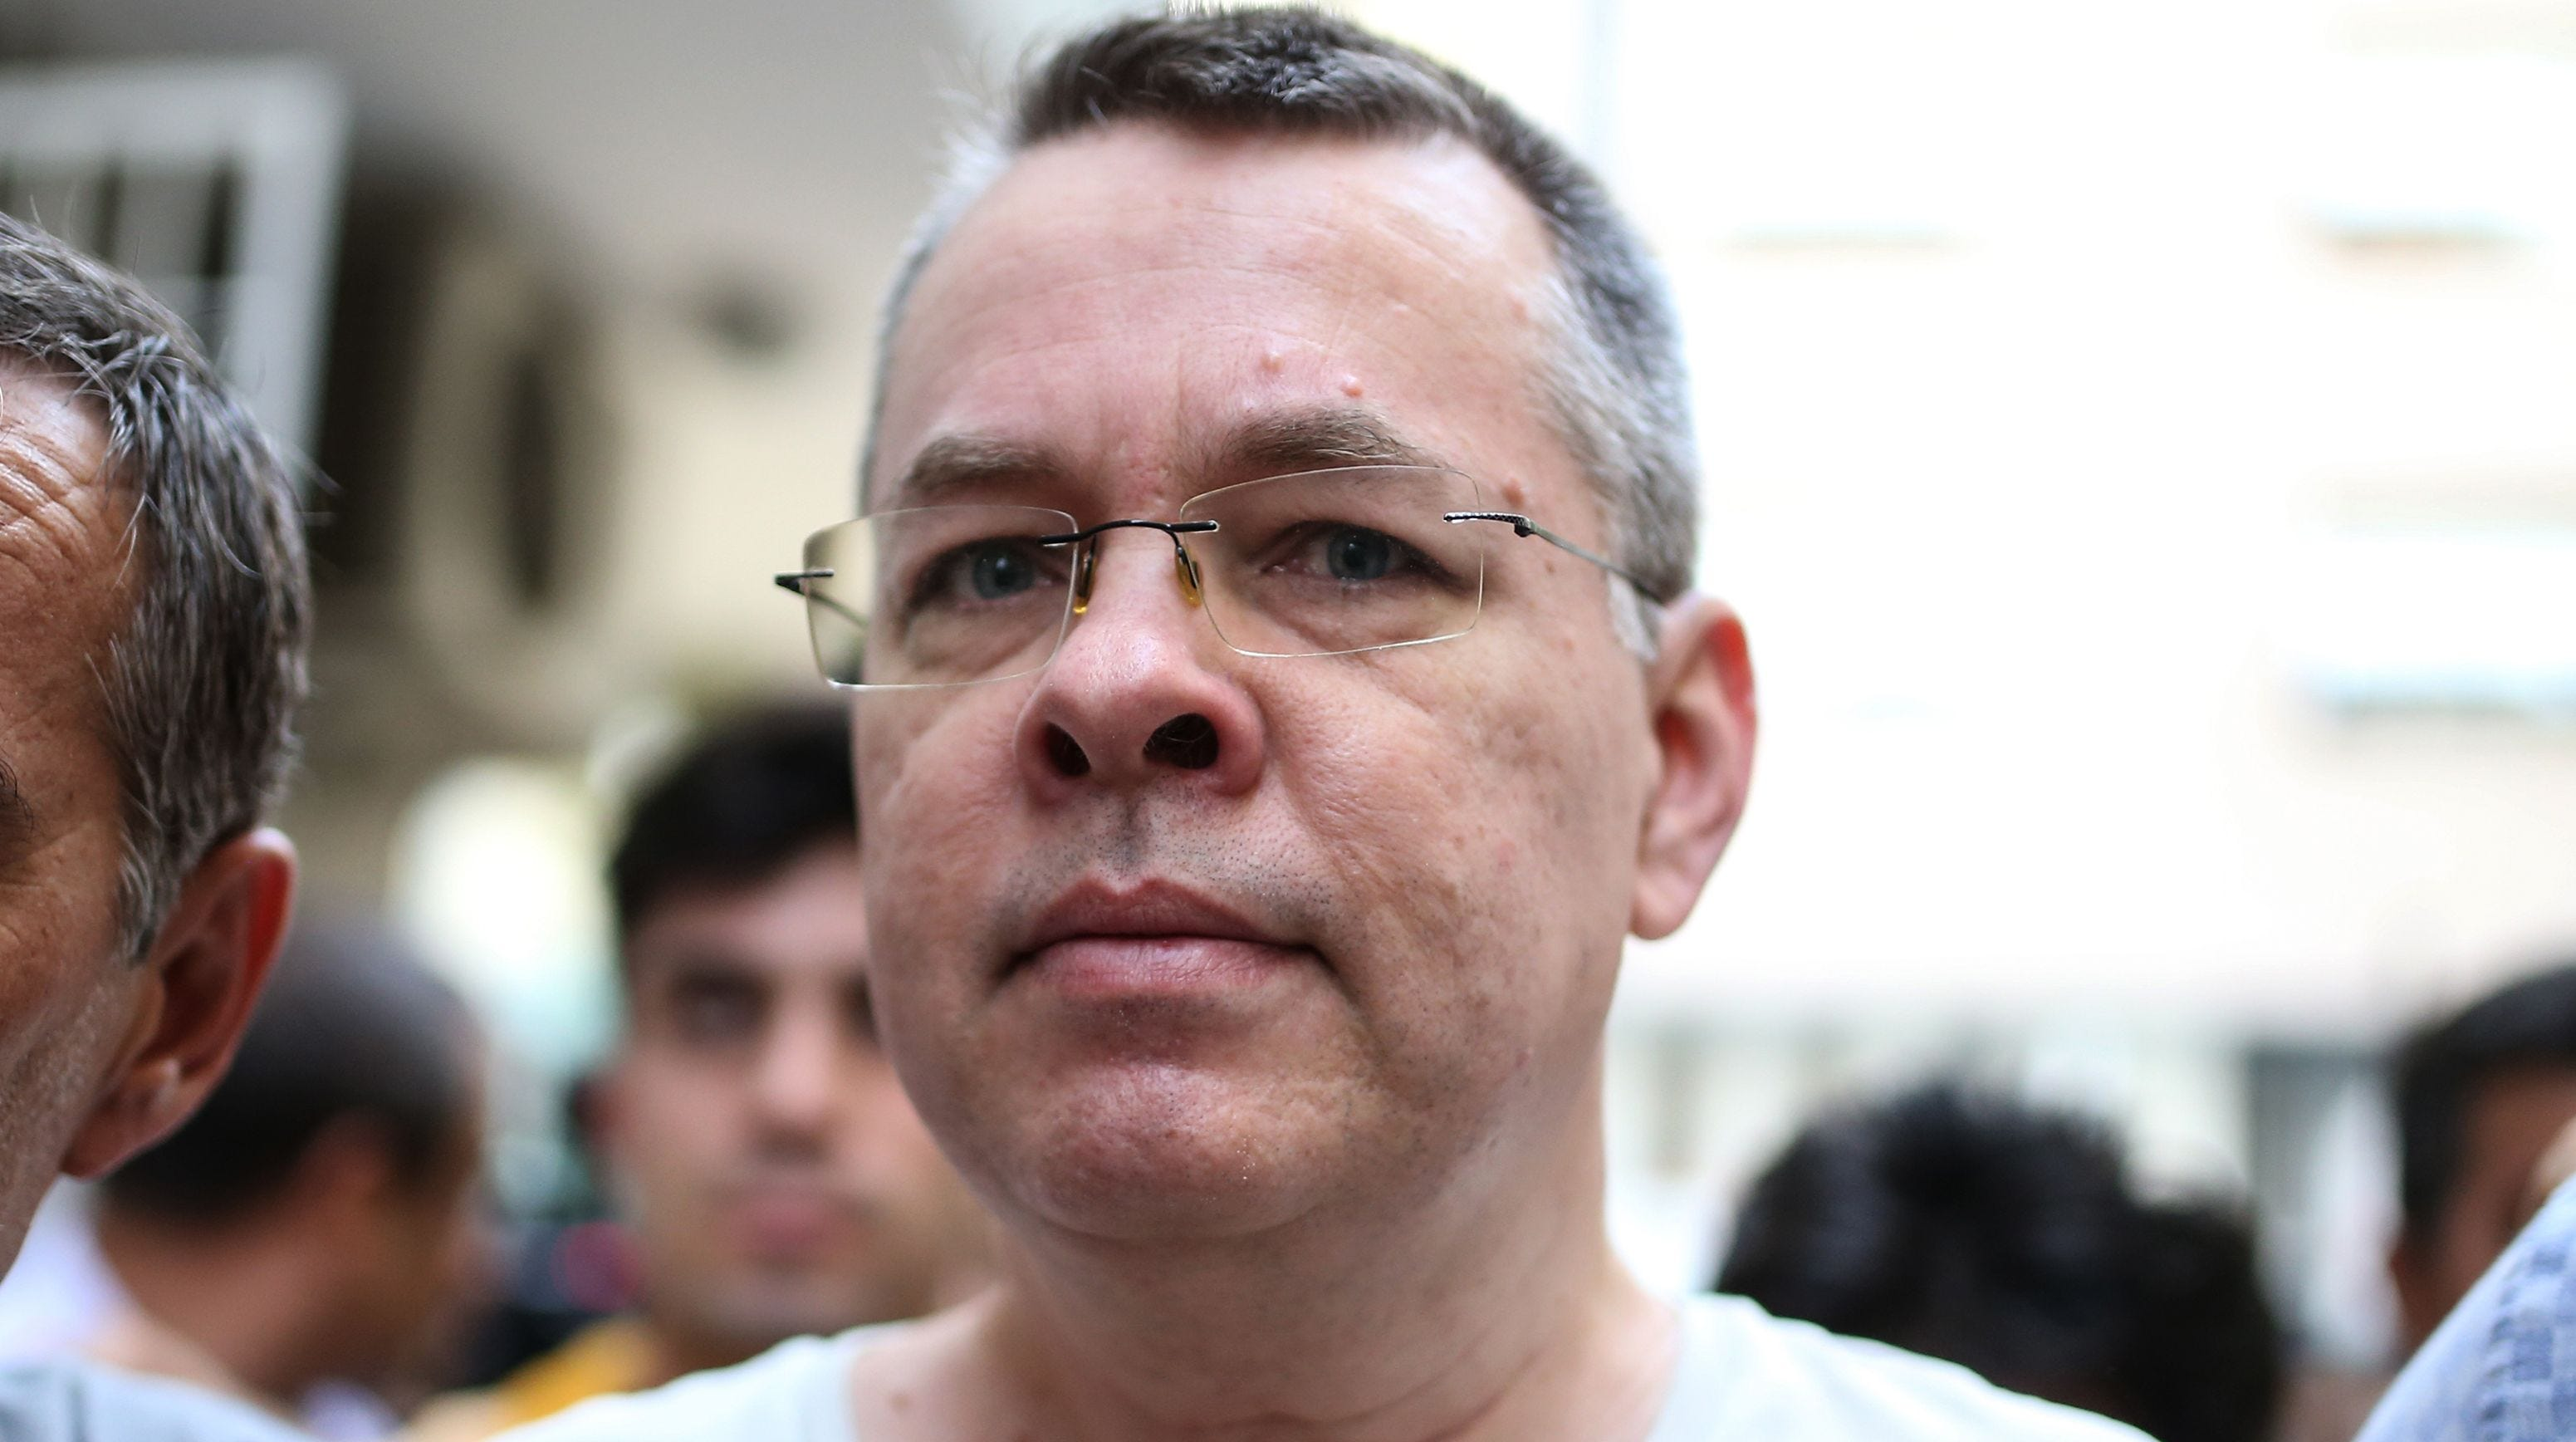 Trump warns Turkey after court rejects freedom for US pastor